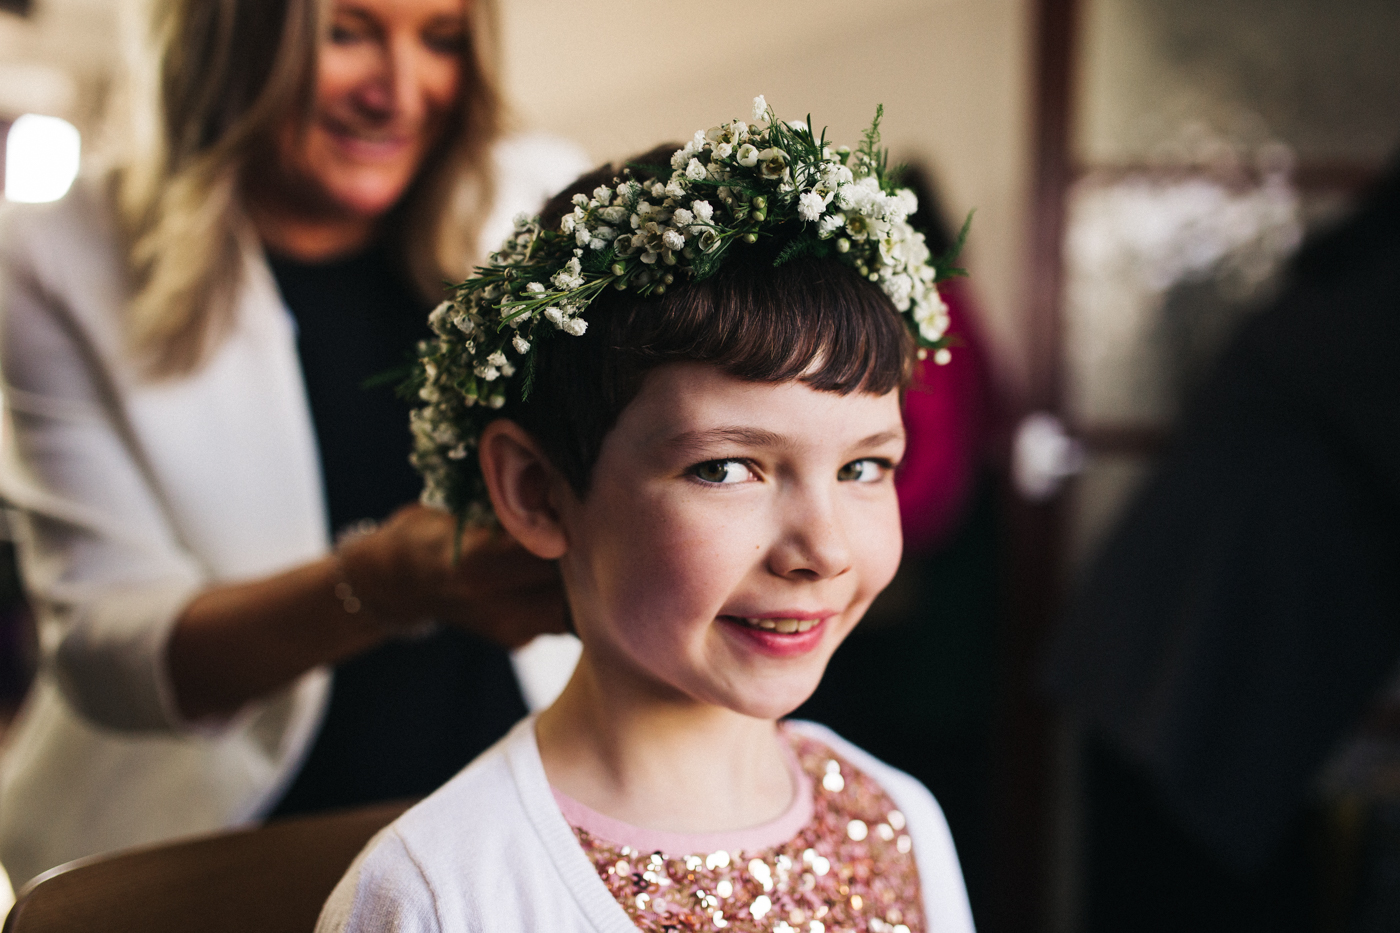 a flower girl has her flower crown put on. ceremony at st georges hall liverpool, oh me oh my wedding reception, north west wedding photographer